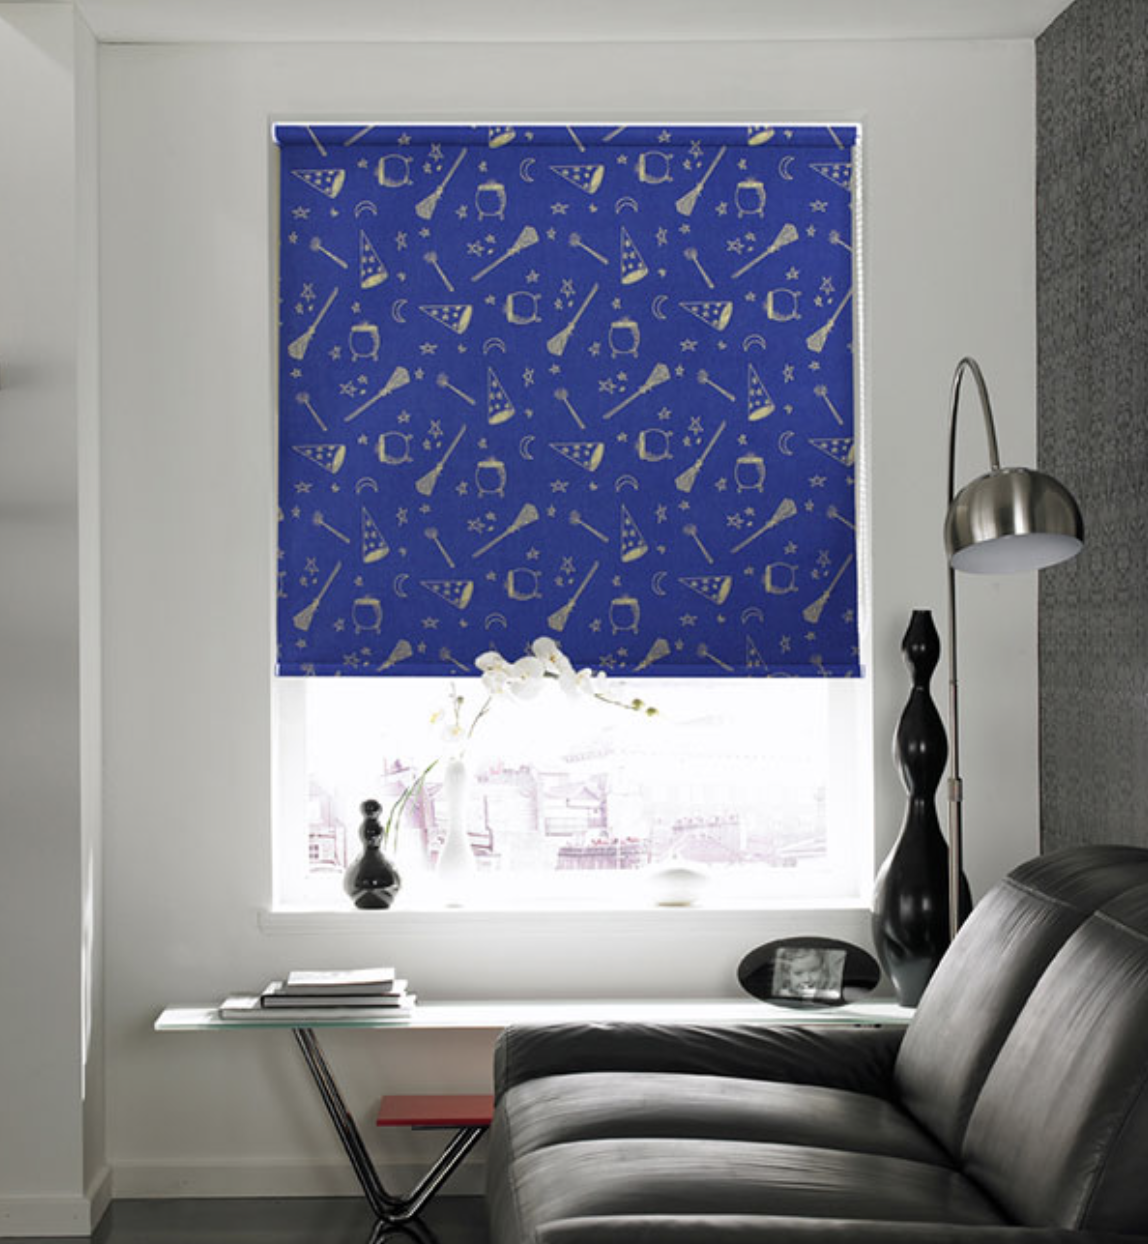 Roller blinds are very convenient